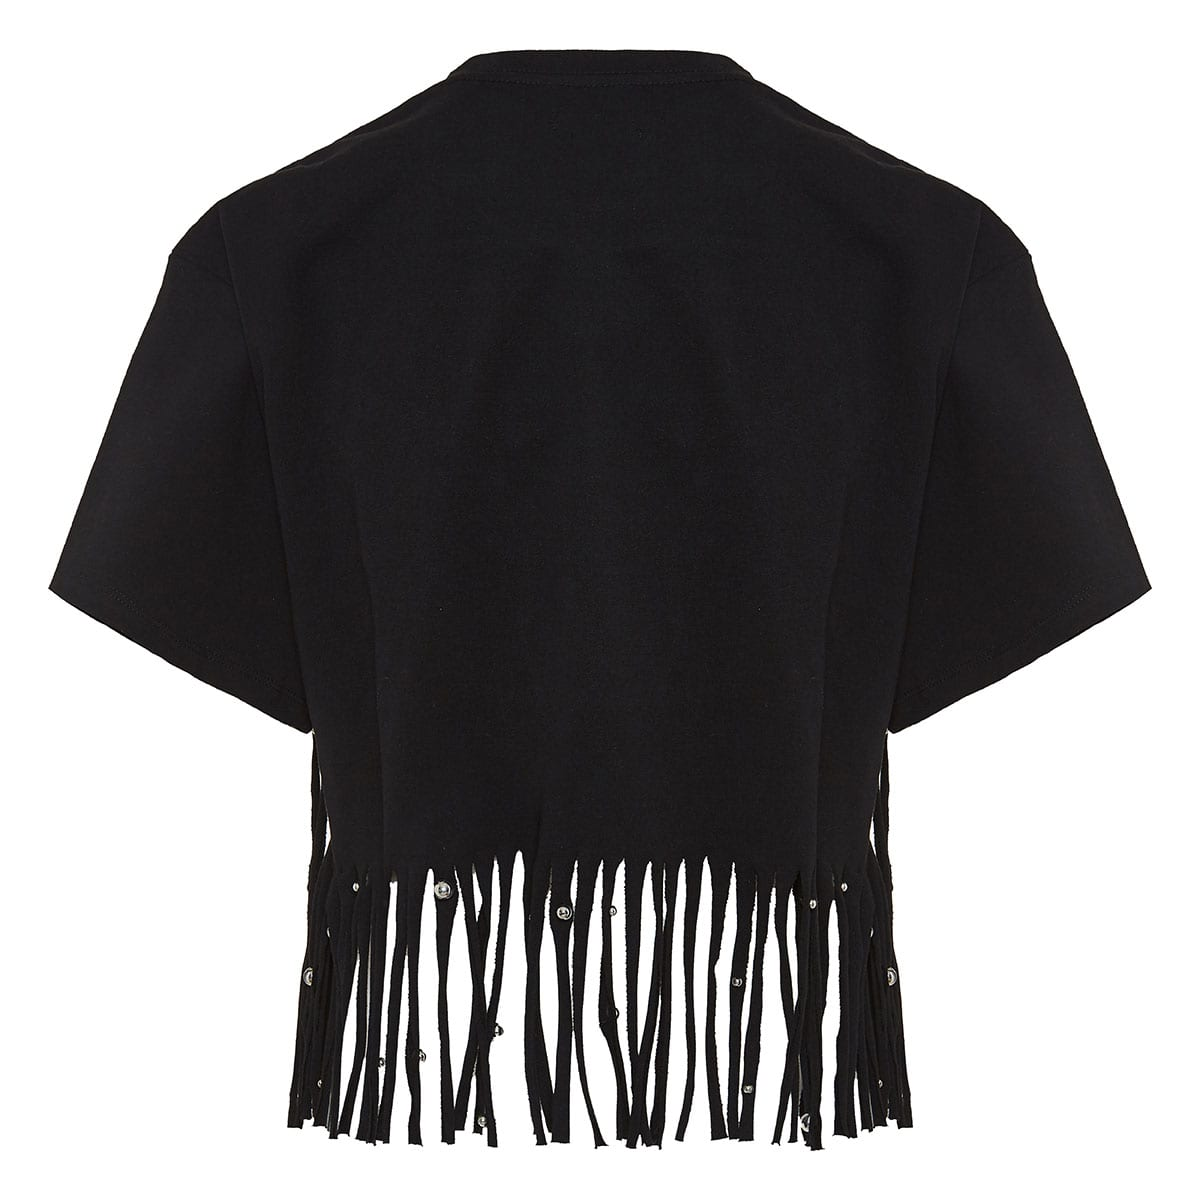 Bianea fringed cropped top with studs